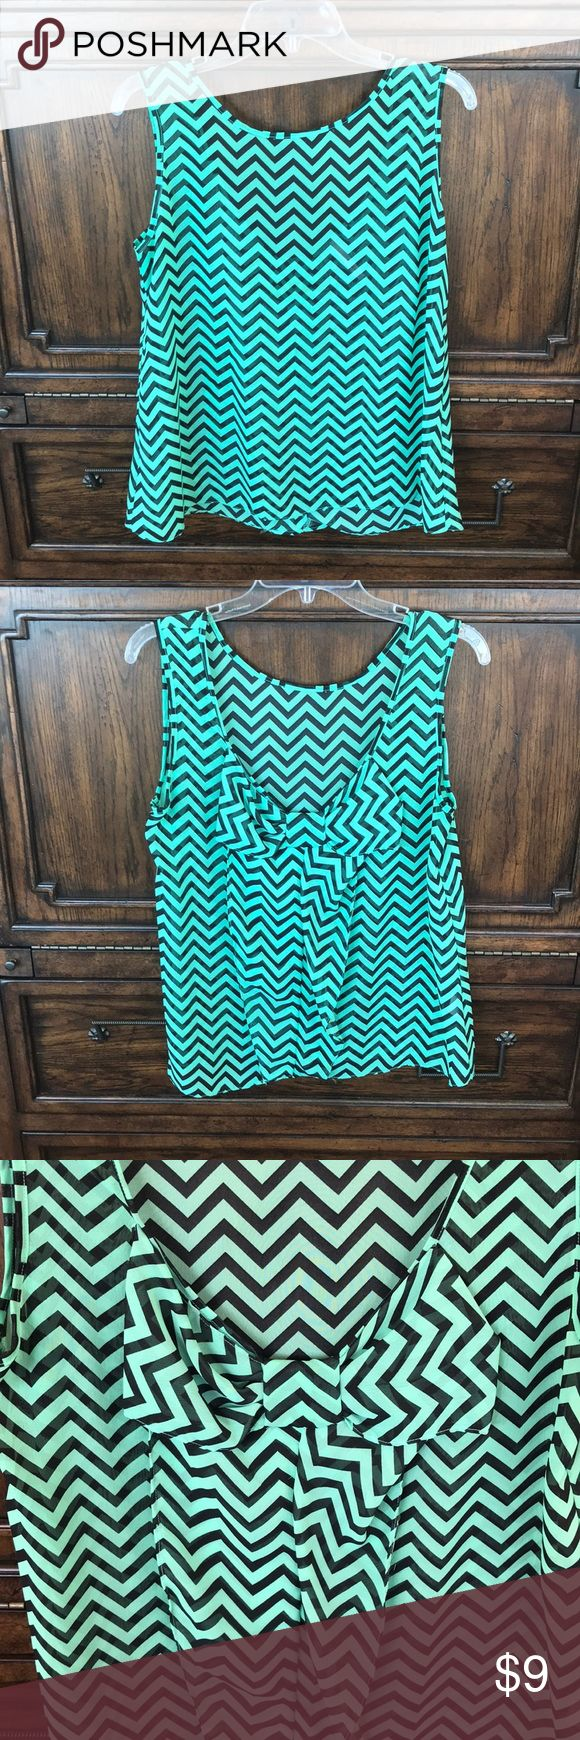 Emma Rose Chevron Top with Bow Back Size Medium Emma Rose Size Medium Green and Black Chevron sleeveless top with low bow back. This sheer top is perfect for this spring and summer! VGUC, asking $9. Smoke Free Home. Emma Rose Tops